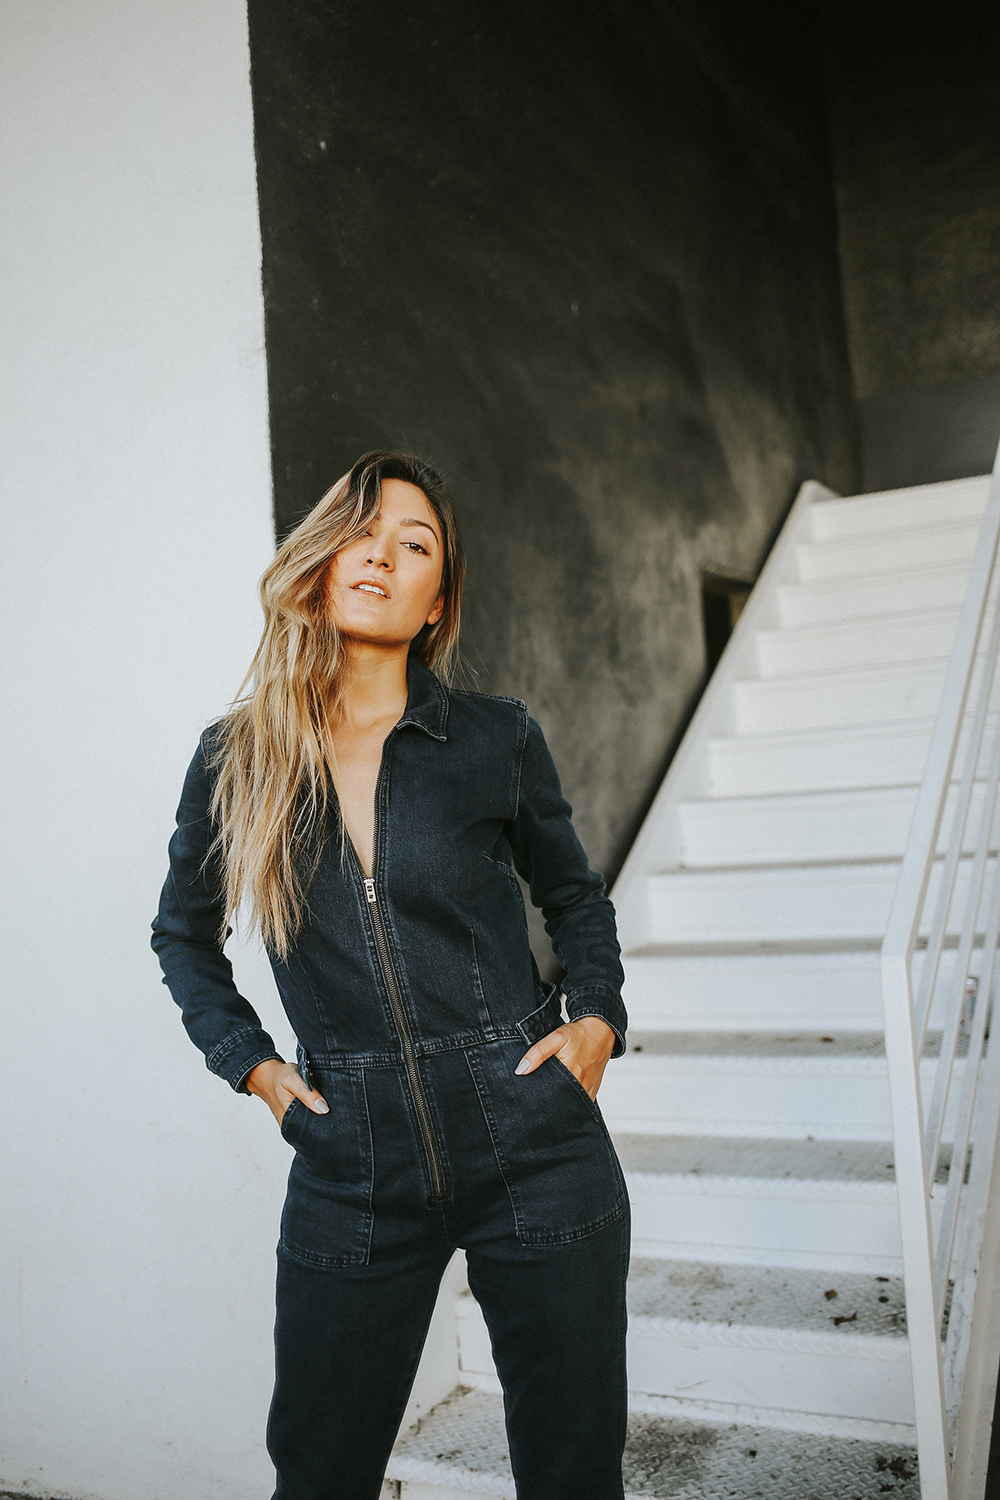 lucky brand denim jumpsuit, denim jumpsuit, lucky brand, jeans, denim, mechanic, street style, culver city, la blogger, melrodstyle, latina blogger, whittier blogger, hispanic blogger, mexican blogger, ootd, style, fashion, fall style